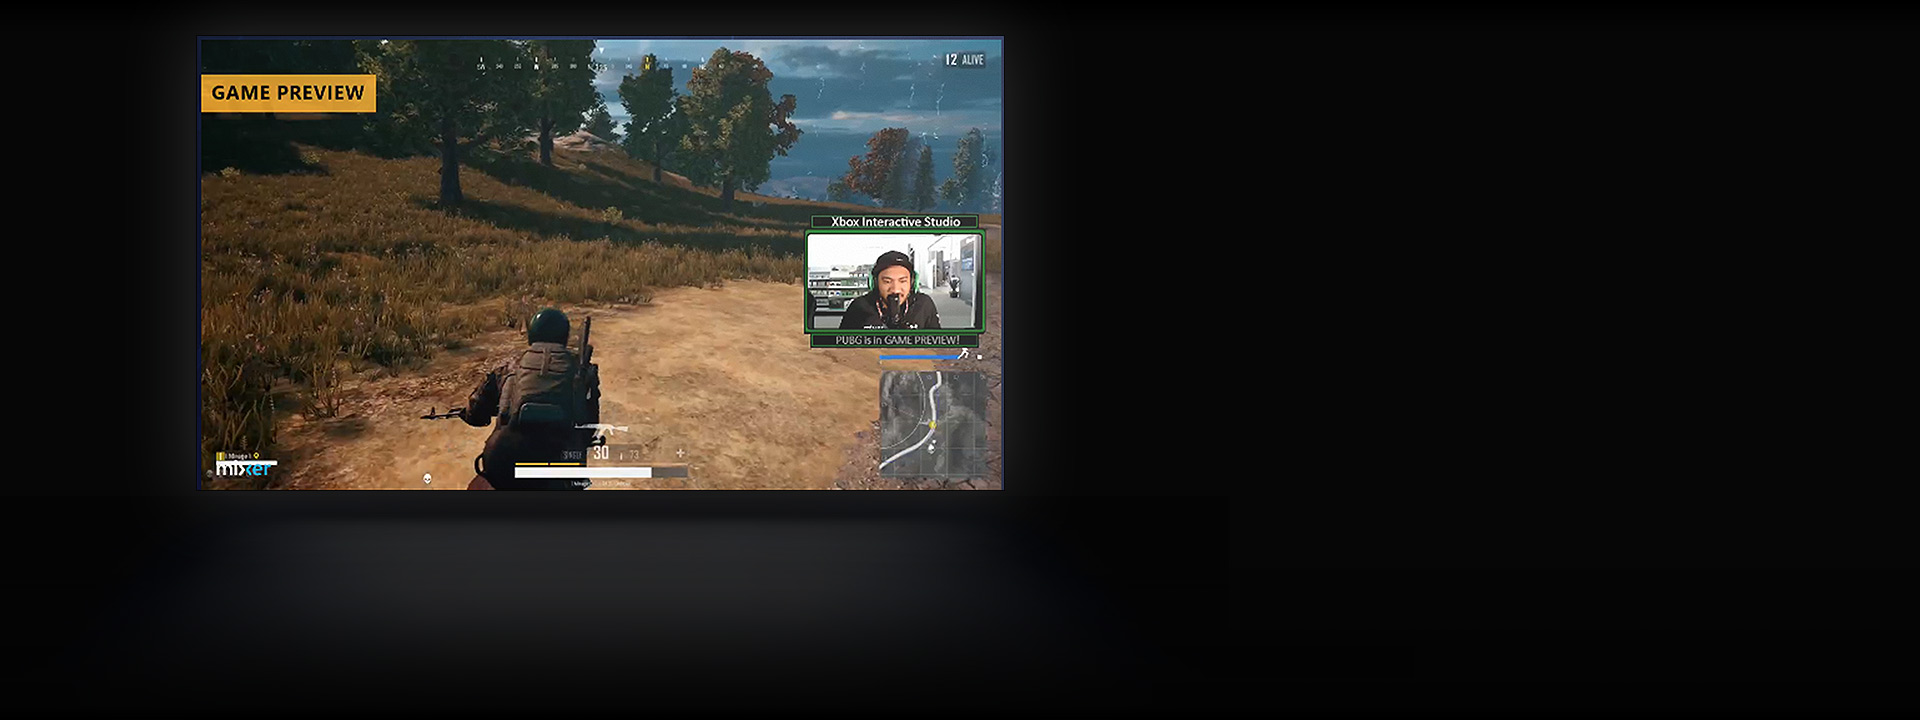 Television screen showing a PlayerUnknown's Battlegrounds Mixer stream